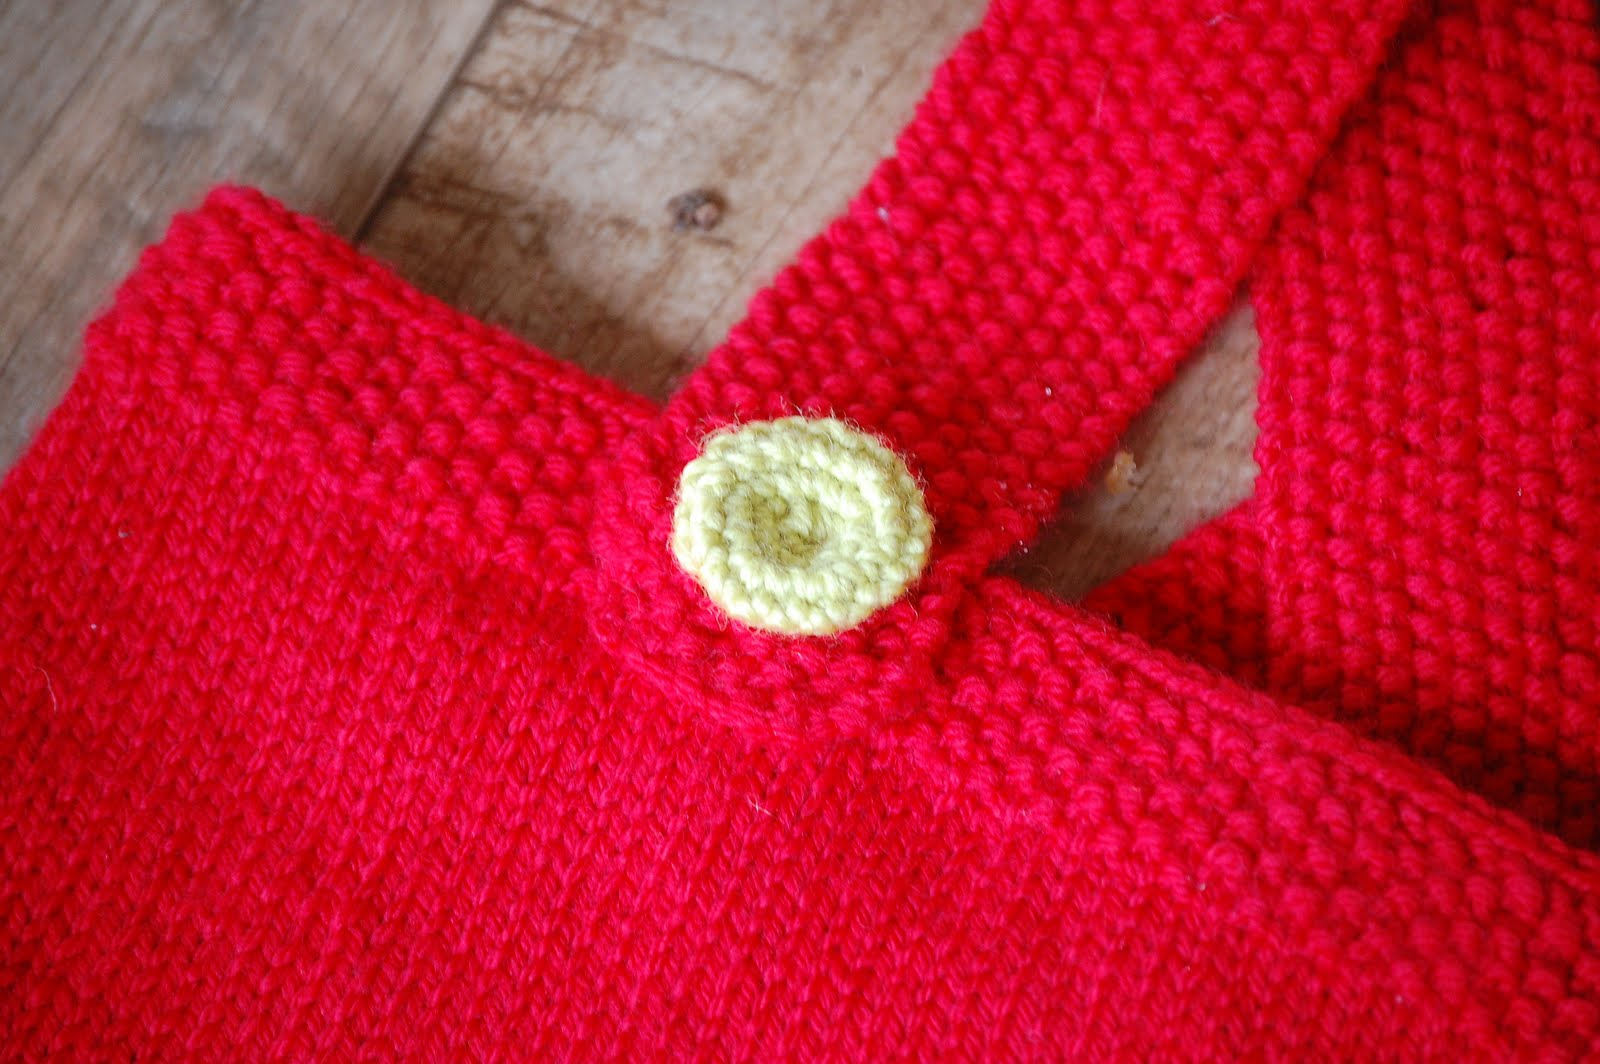 Knit Vest Pattern In The Round : Greedy For Colour: Knitting Vests in the Round.